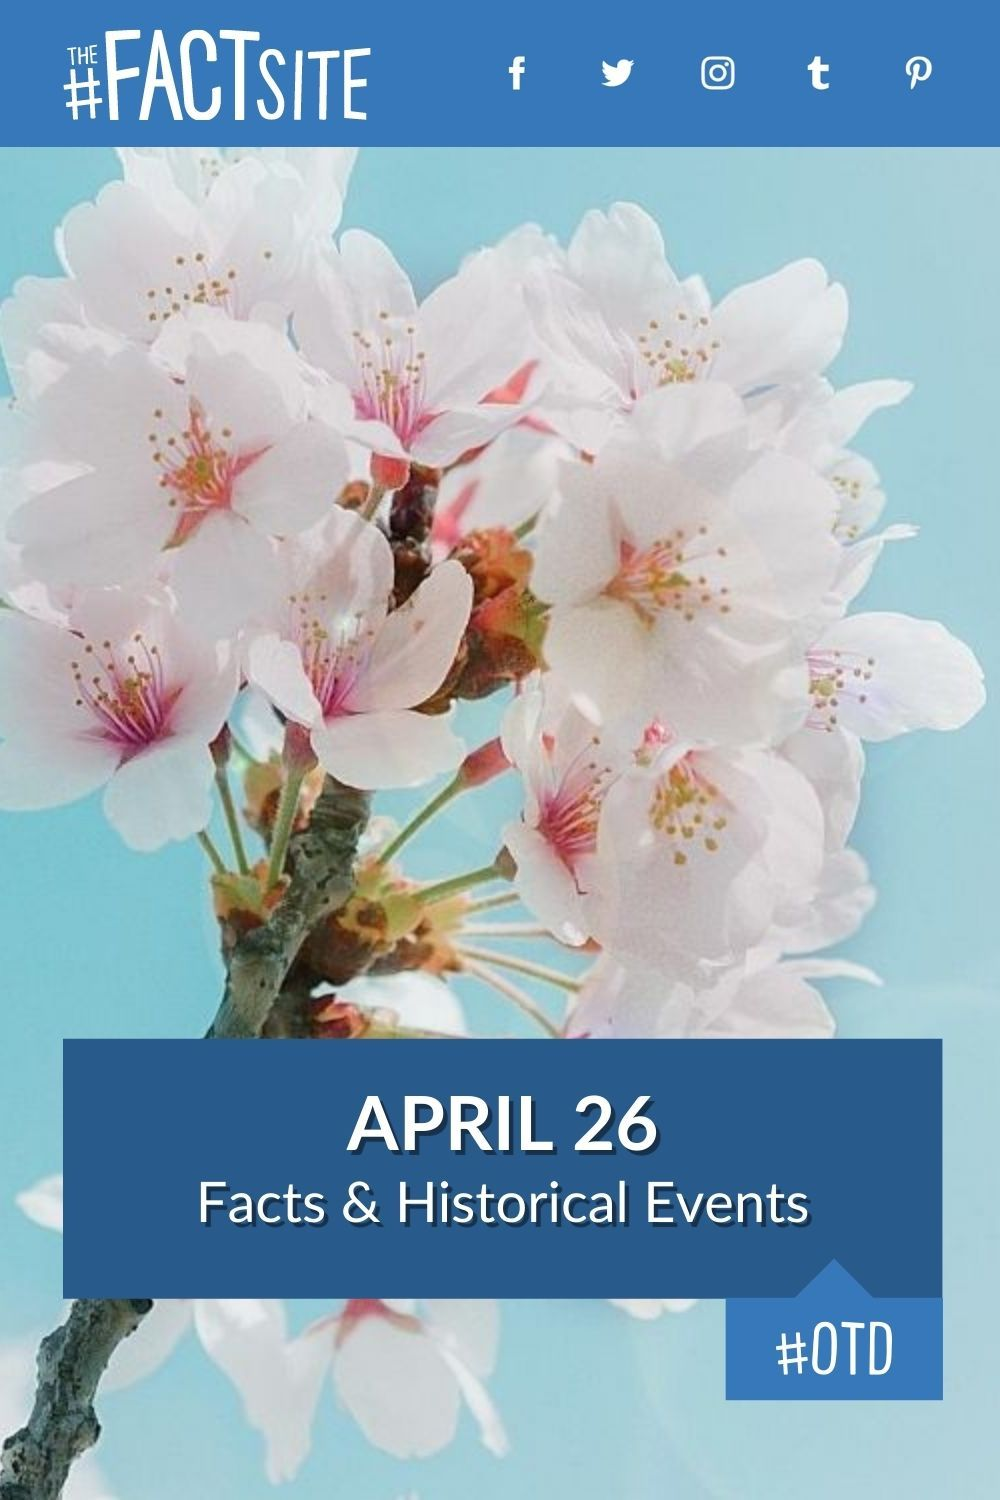 Facts & Historic Events That Happened on April 26